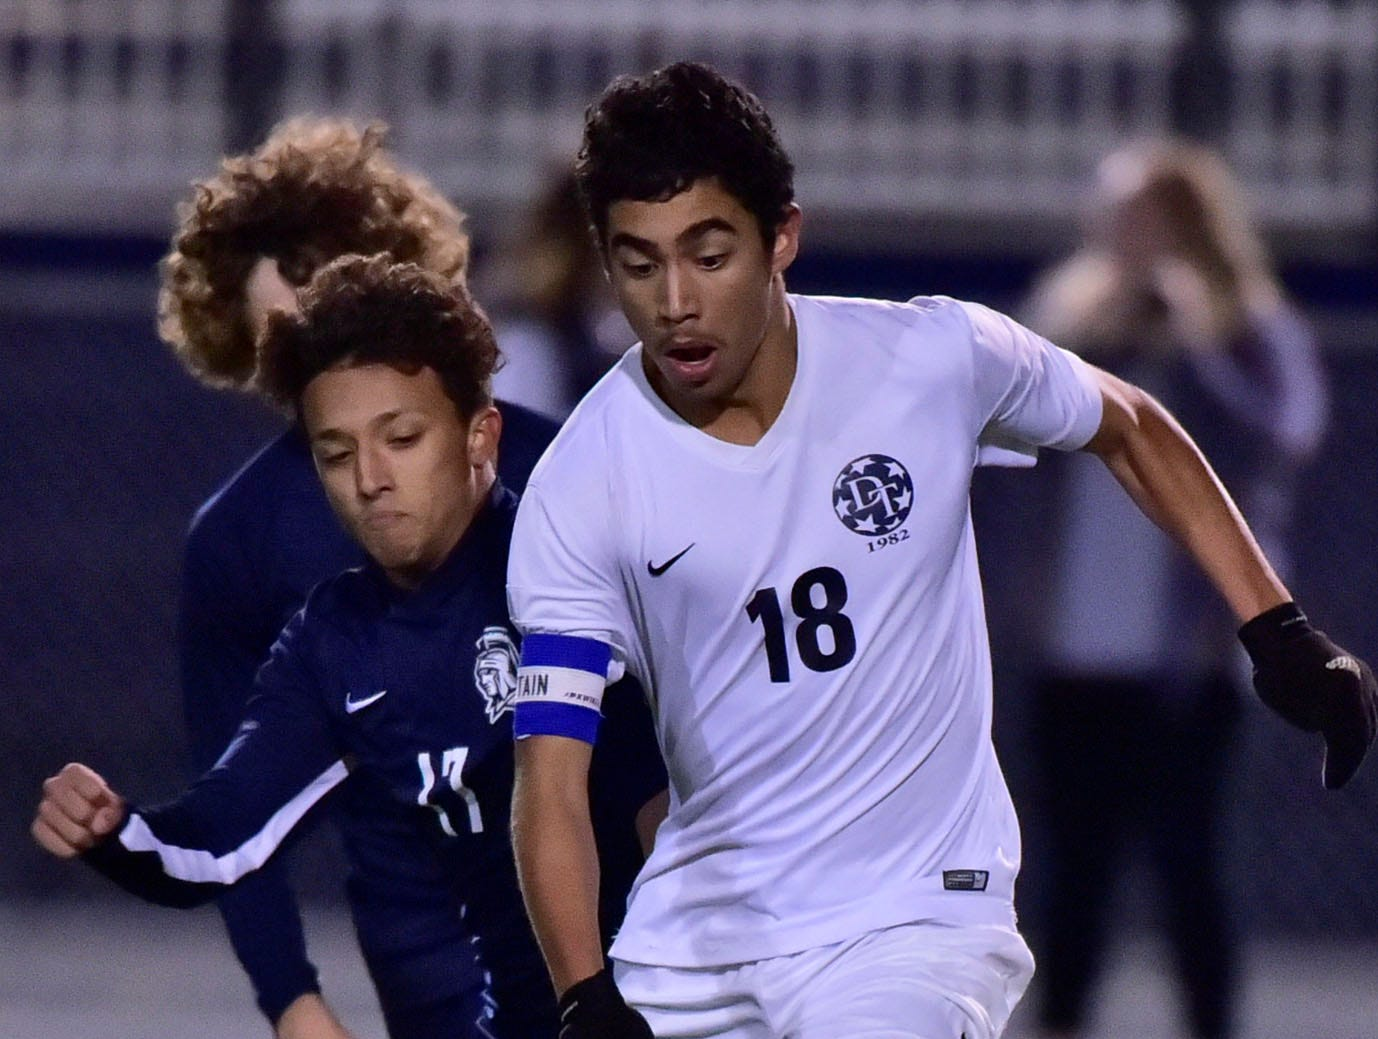 Dallastown's Leo Garcia (18) dribbles the ball ahead of Chambersburg's Chuy Munoz. Chambersburg lost a first round D3 soccer match to Dallastown 2-1 on Tuesday, Oct. 23, 2018.